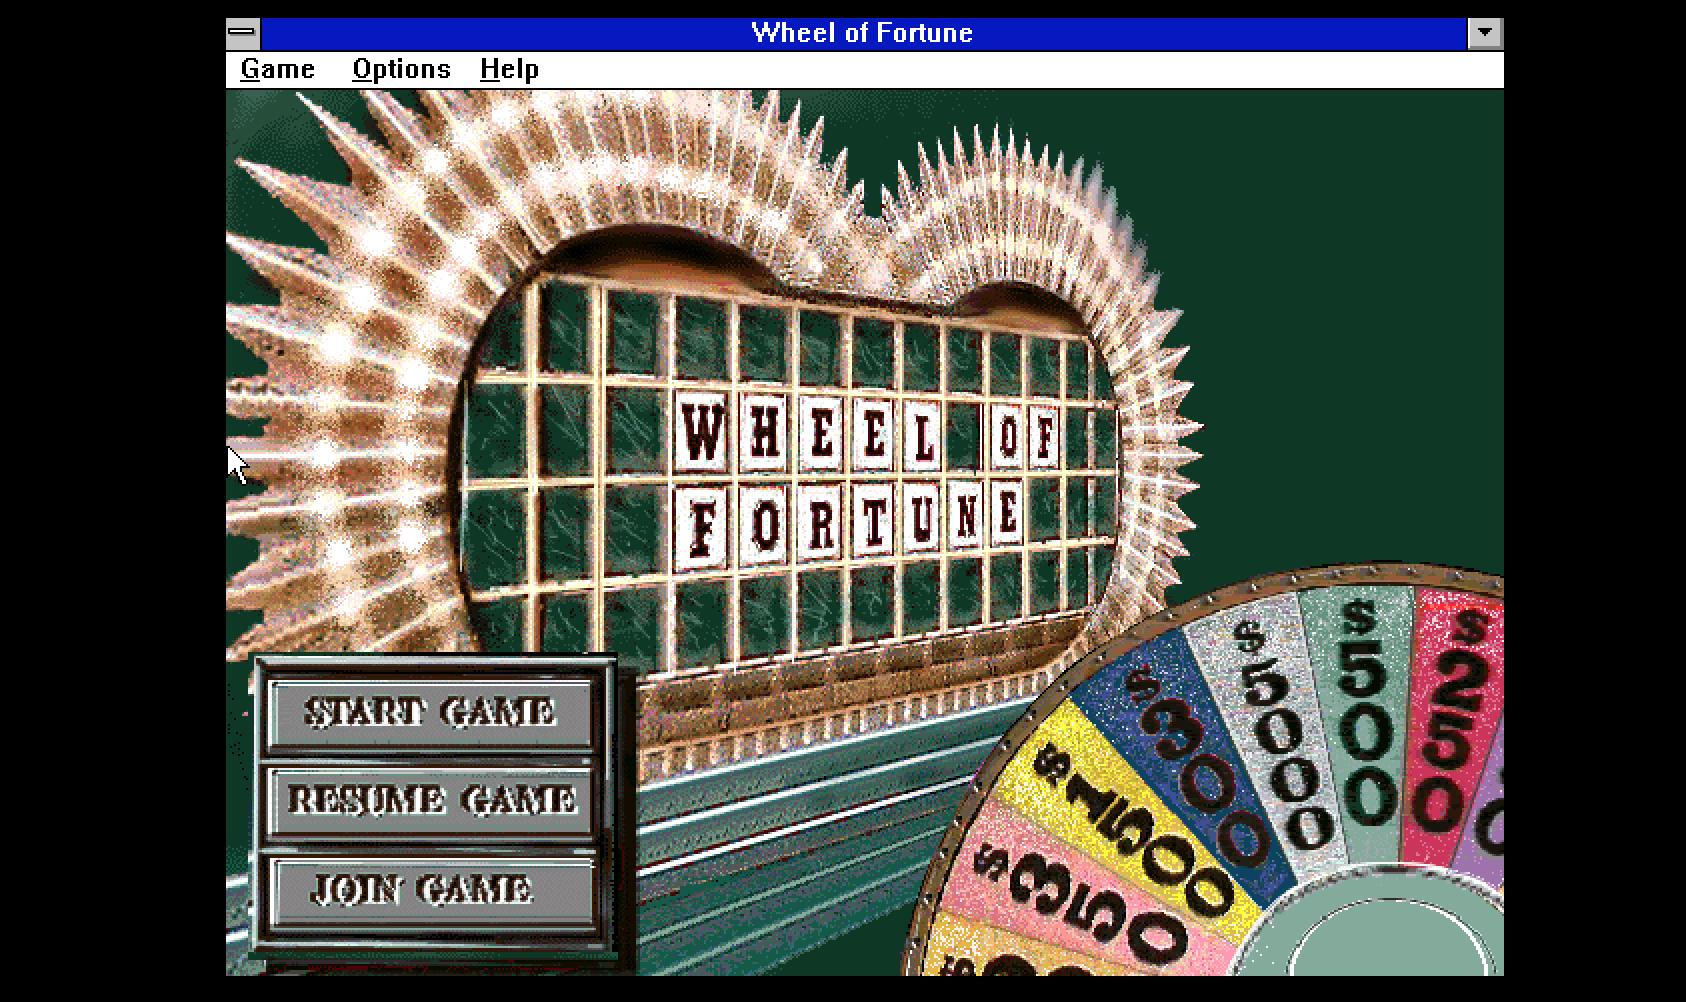 You can now play tons of classic Windows 3.1 games from the '90s online